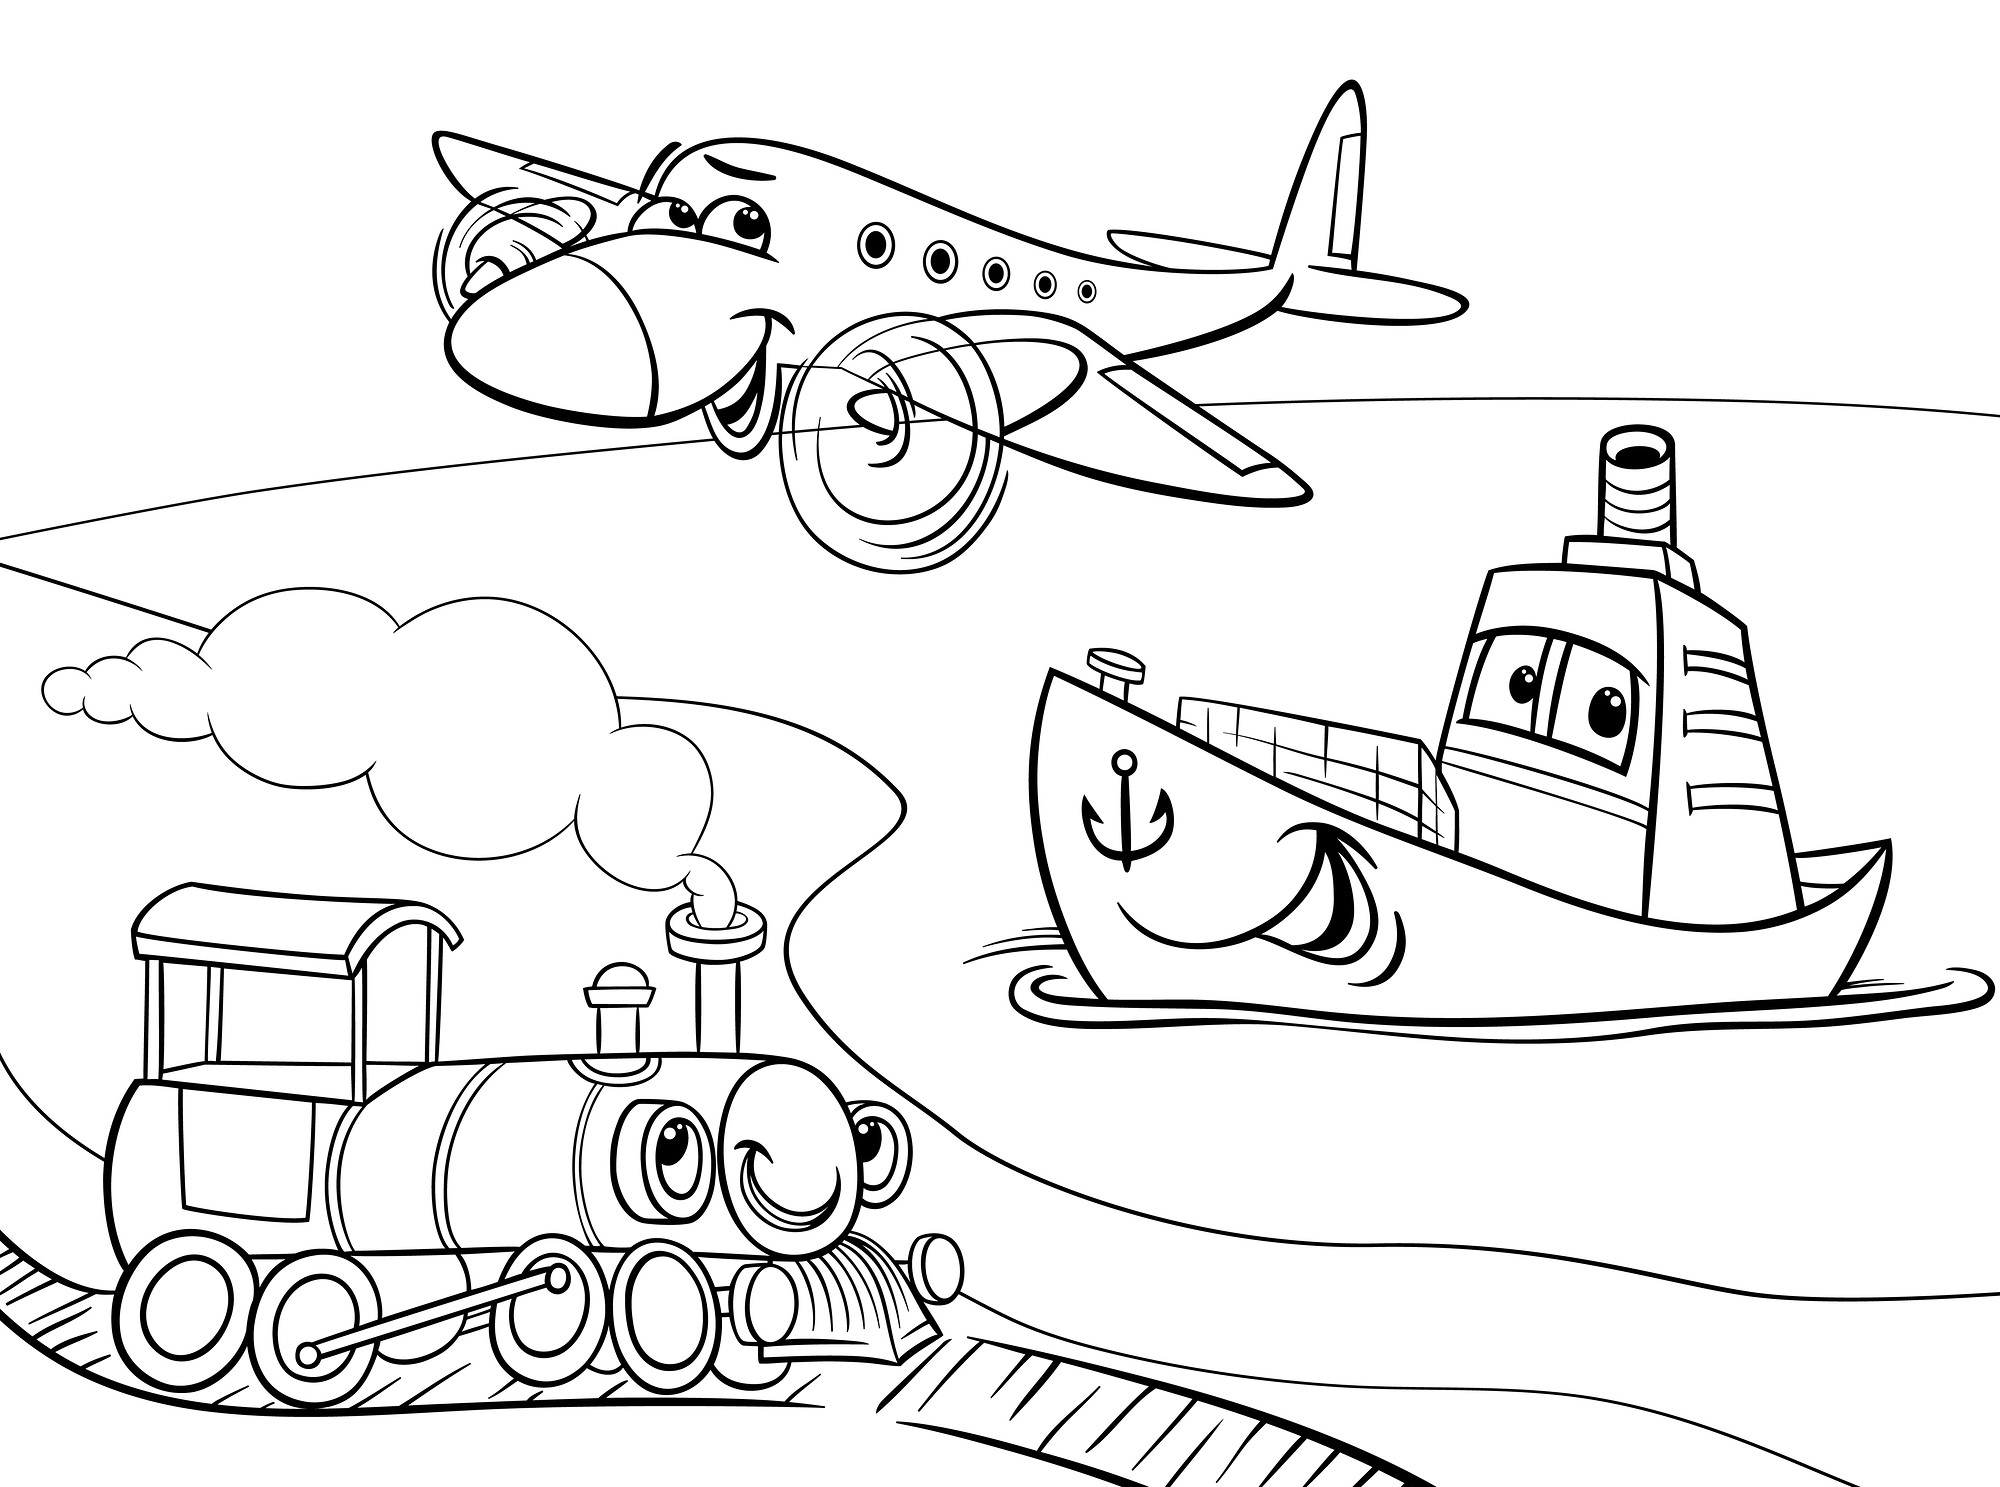 2000x1487 Train Transportation Coloring Pages For Kids Elegant Water